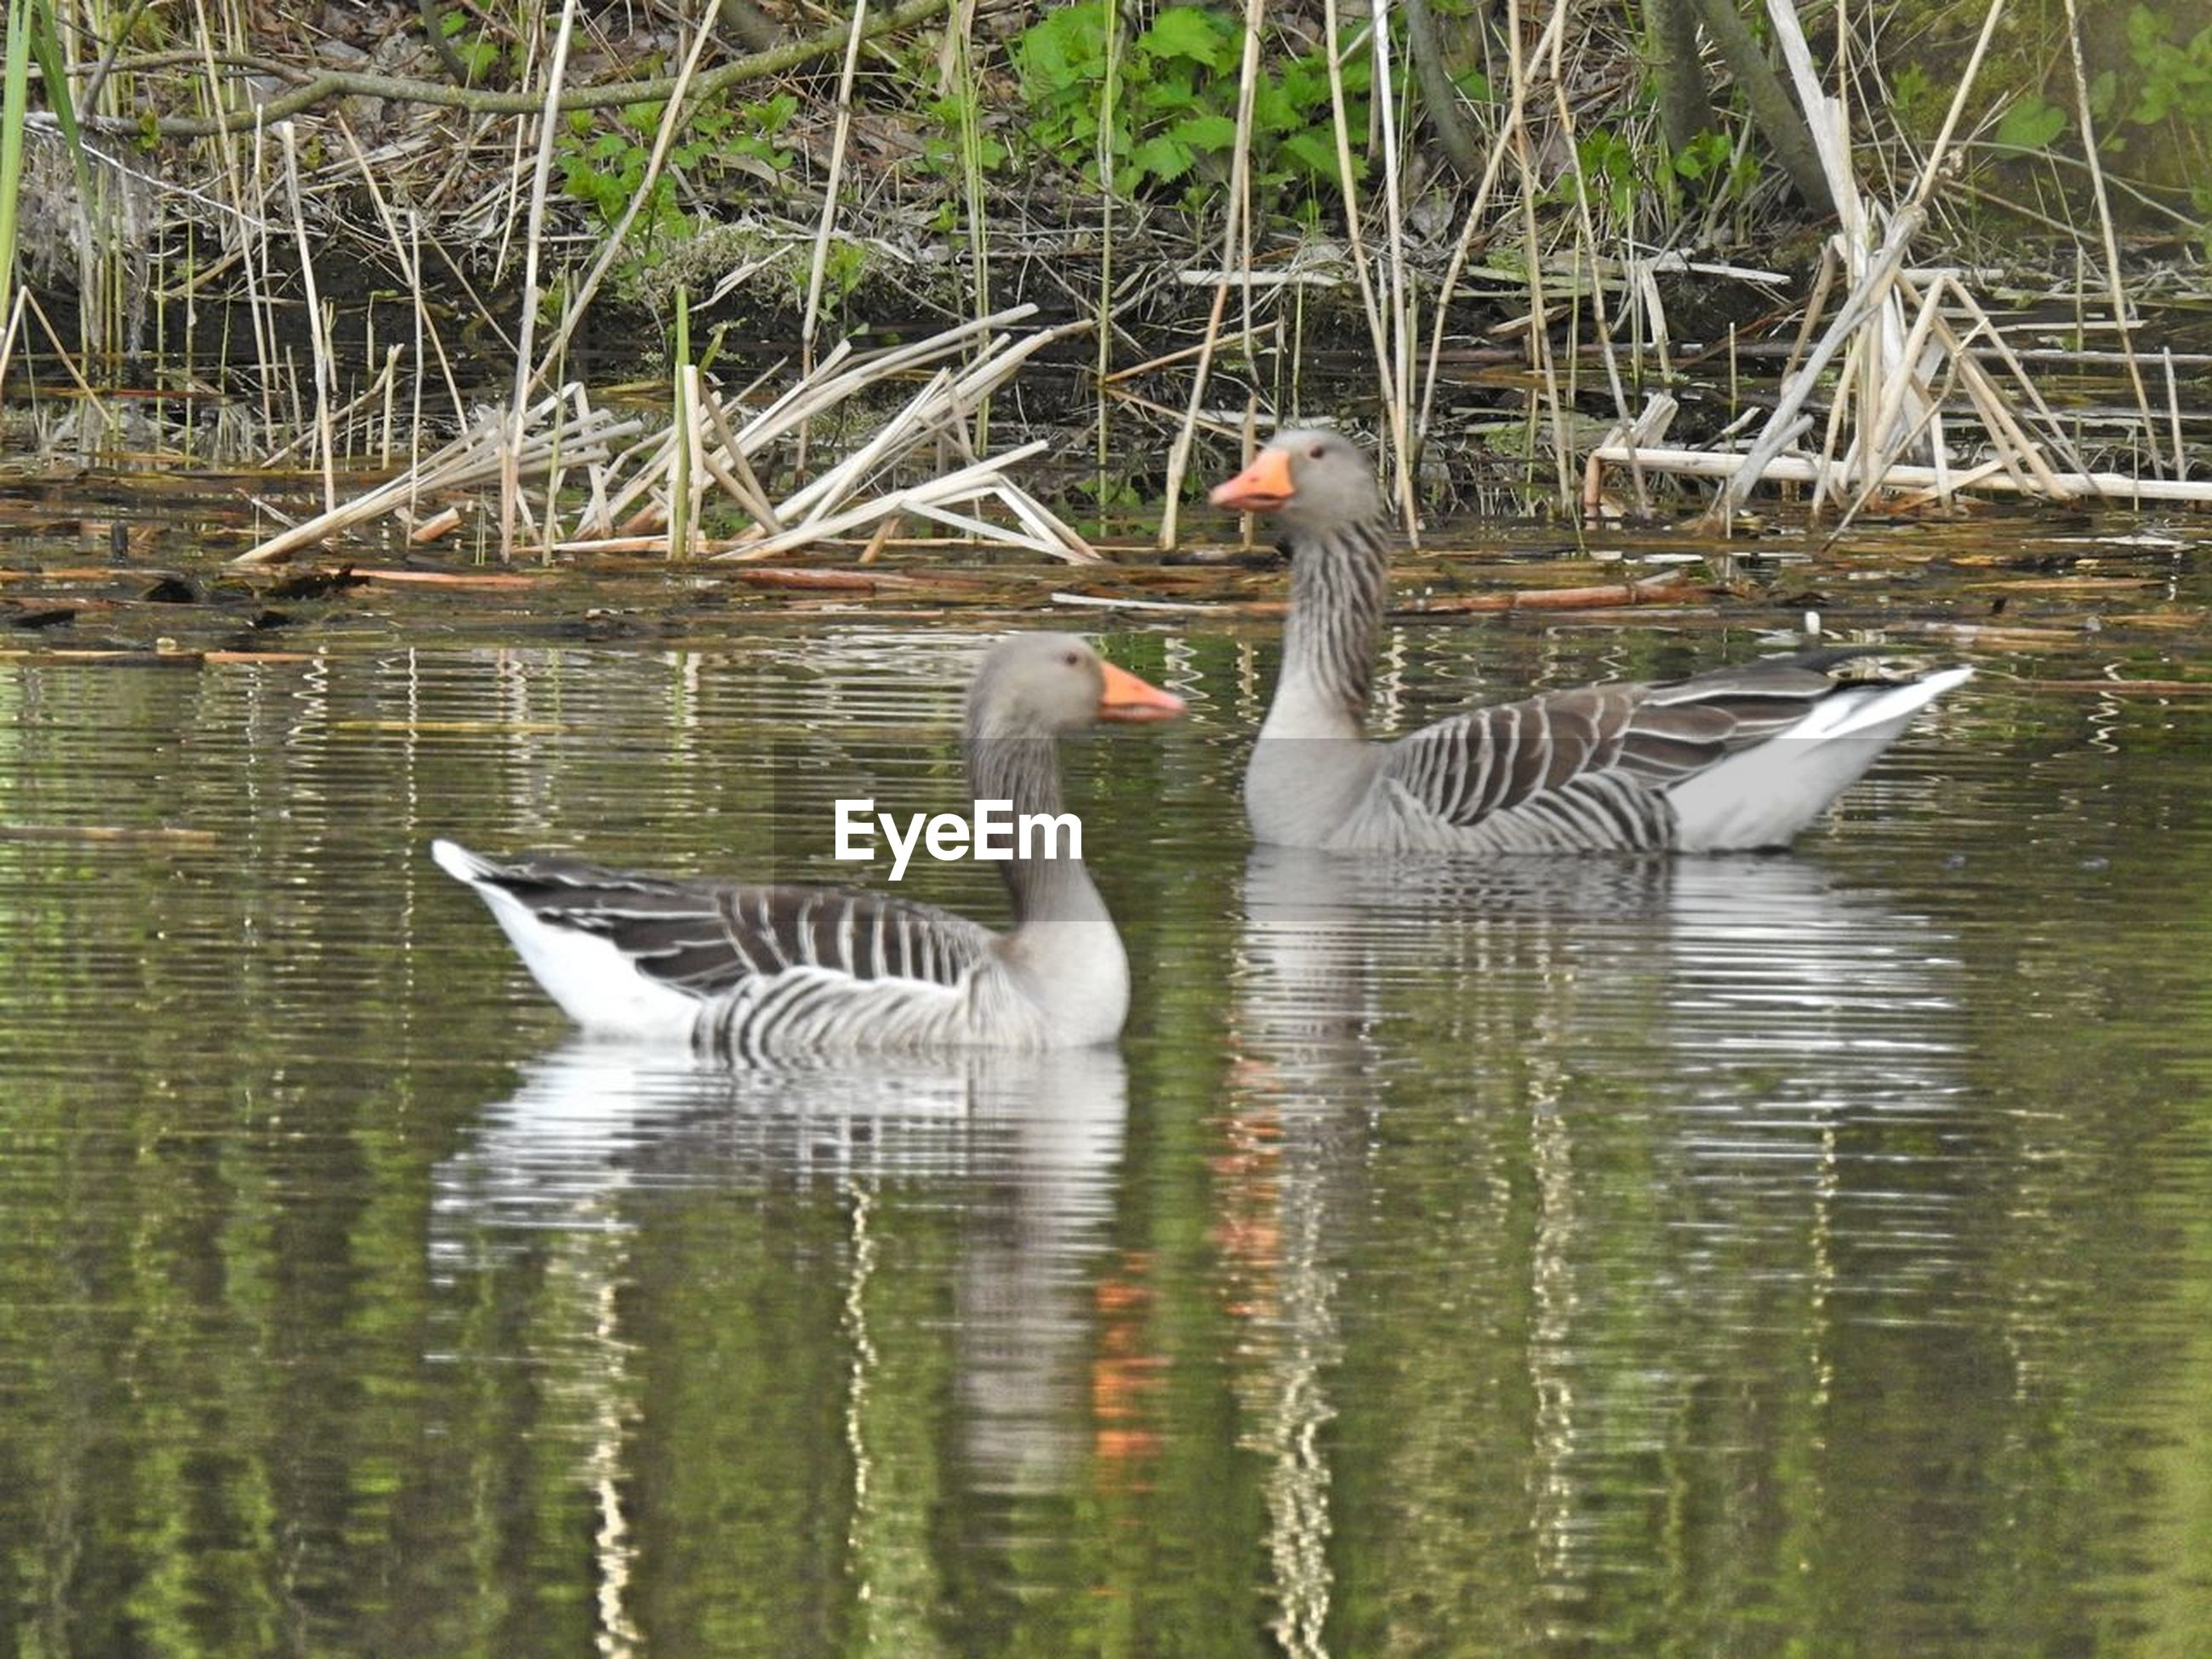 bird, animals in the wild, animal themes, lake, goose, gosling, water, wildlife, water bird, animal family, swimming, nature, geese, waterfront, greylag goose, togetherness, young bird, day, young animal, animal wildlife, outdoors, no people